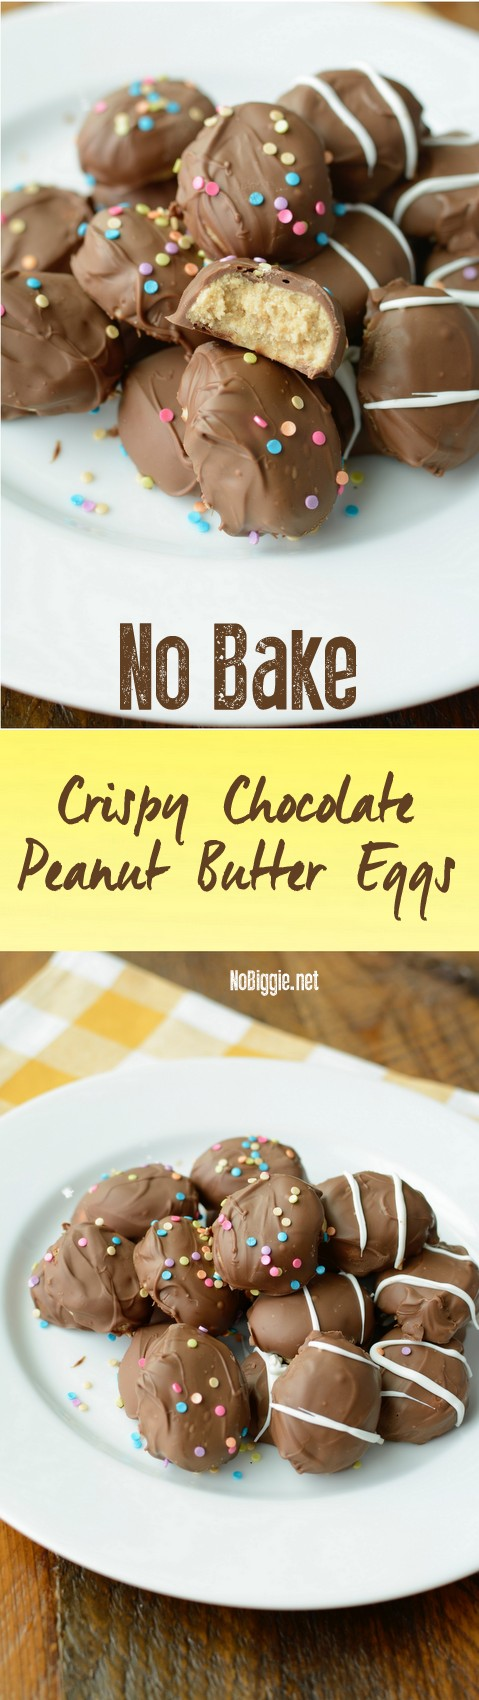 No Bake Crispy Peanut Butter eggs | NoBiggie.net